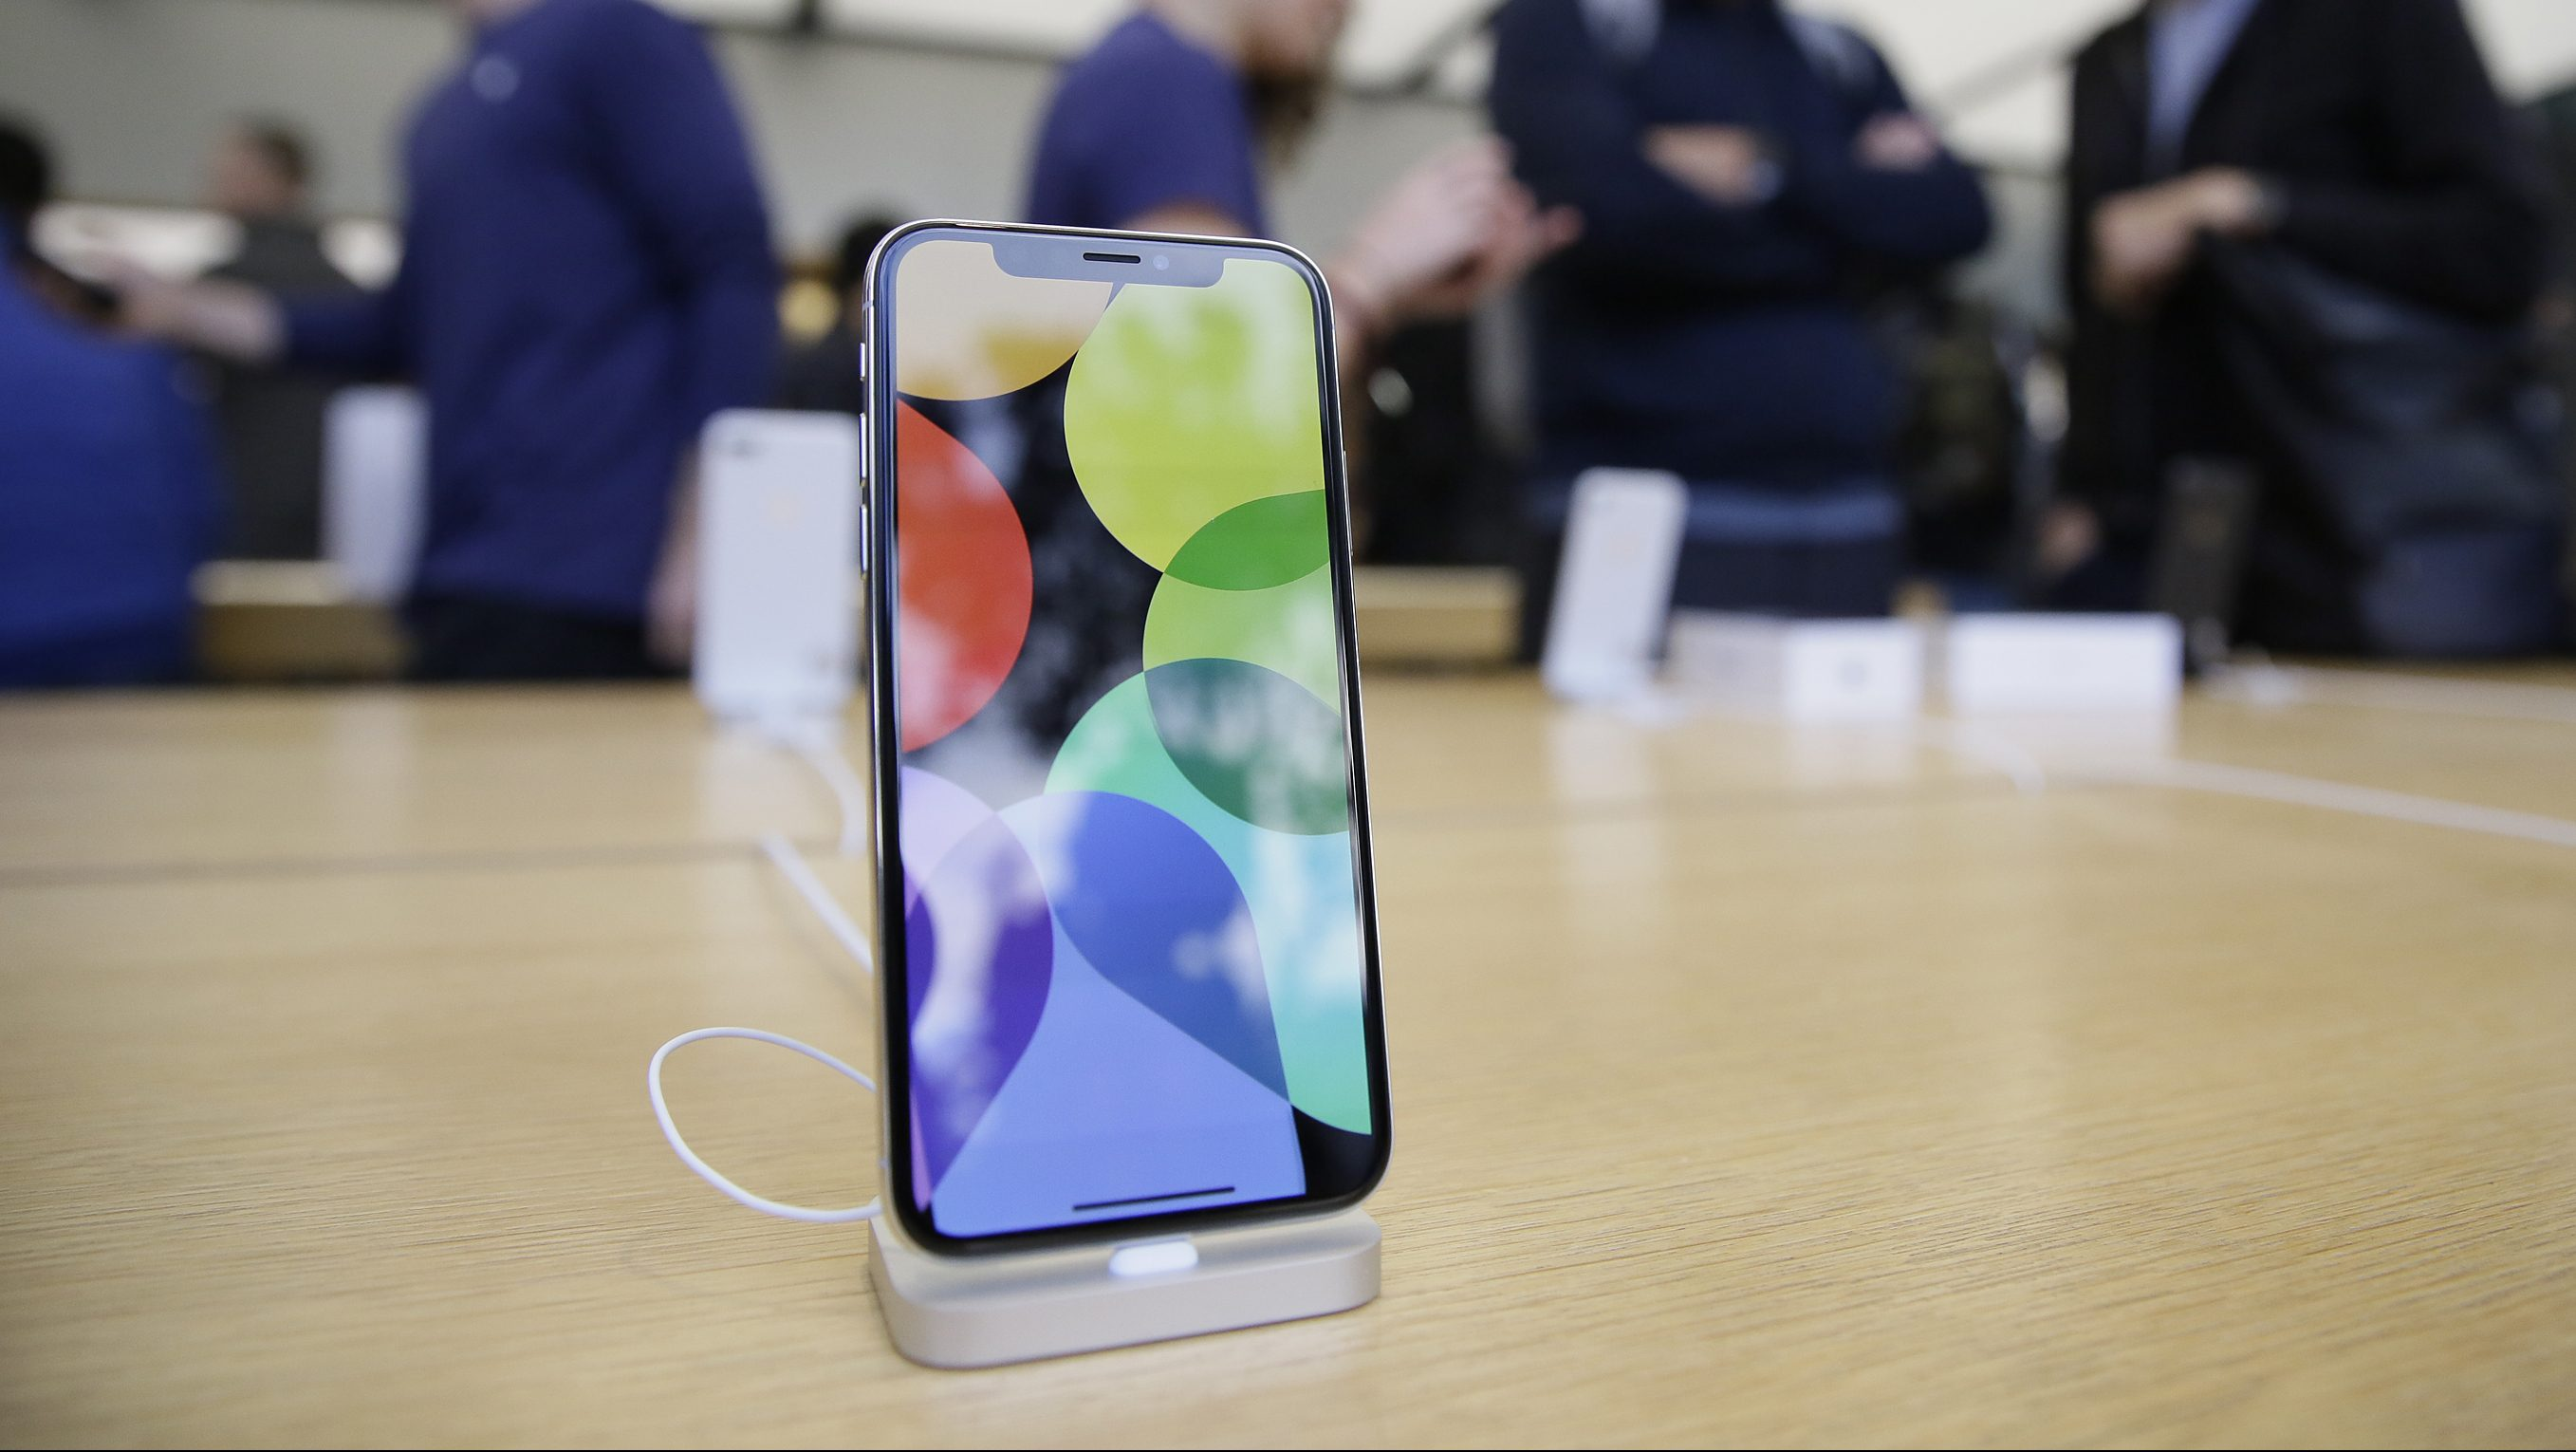 The new iPhone X is seen on display at the Apple Union Square store Friday, Nov. 3, 2017, in San Francisco. The iPhone X's lush screen, facial-recognition skills and $1,000 price tag are breaking new ground in Apple's marquee product line. Now, the much-anticipated device is testing the patience of consumers and investors as demand outstrips suppliers' capacity. (AP Photo/Eric Risberg)